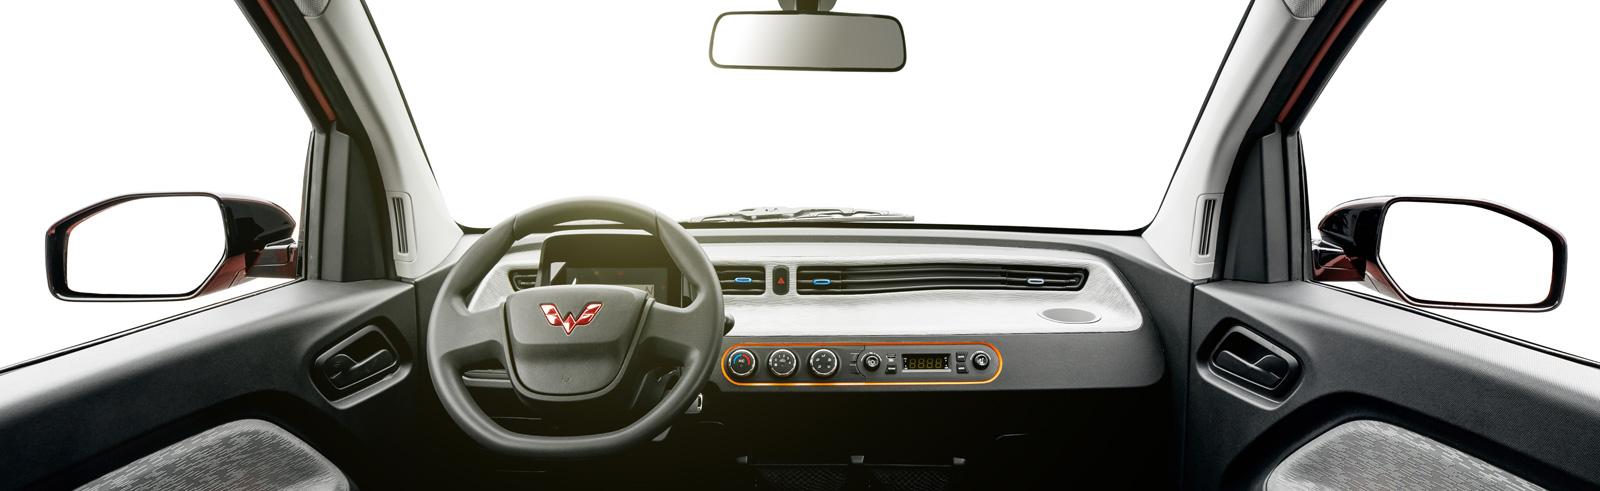 GM's Wuling unveiled the interior of its Hong Guang Mini EV